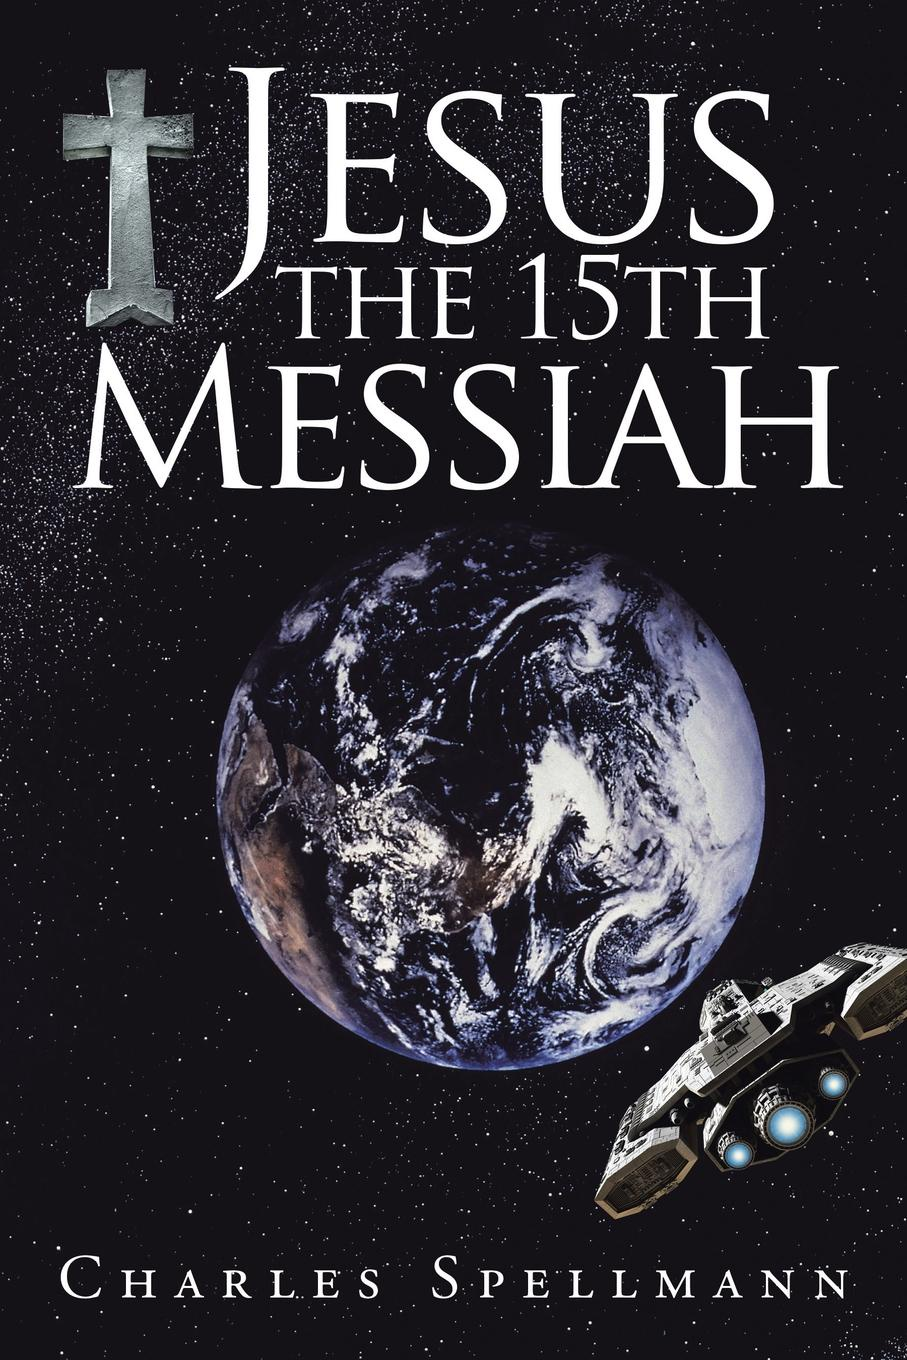 Charles Spellmann Jesus the 15th Messiah messiah from scratch